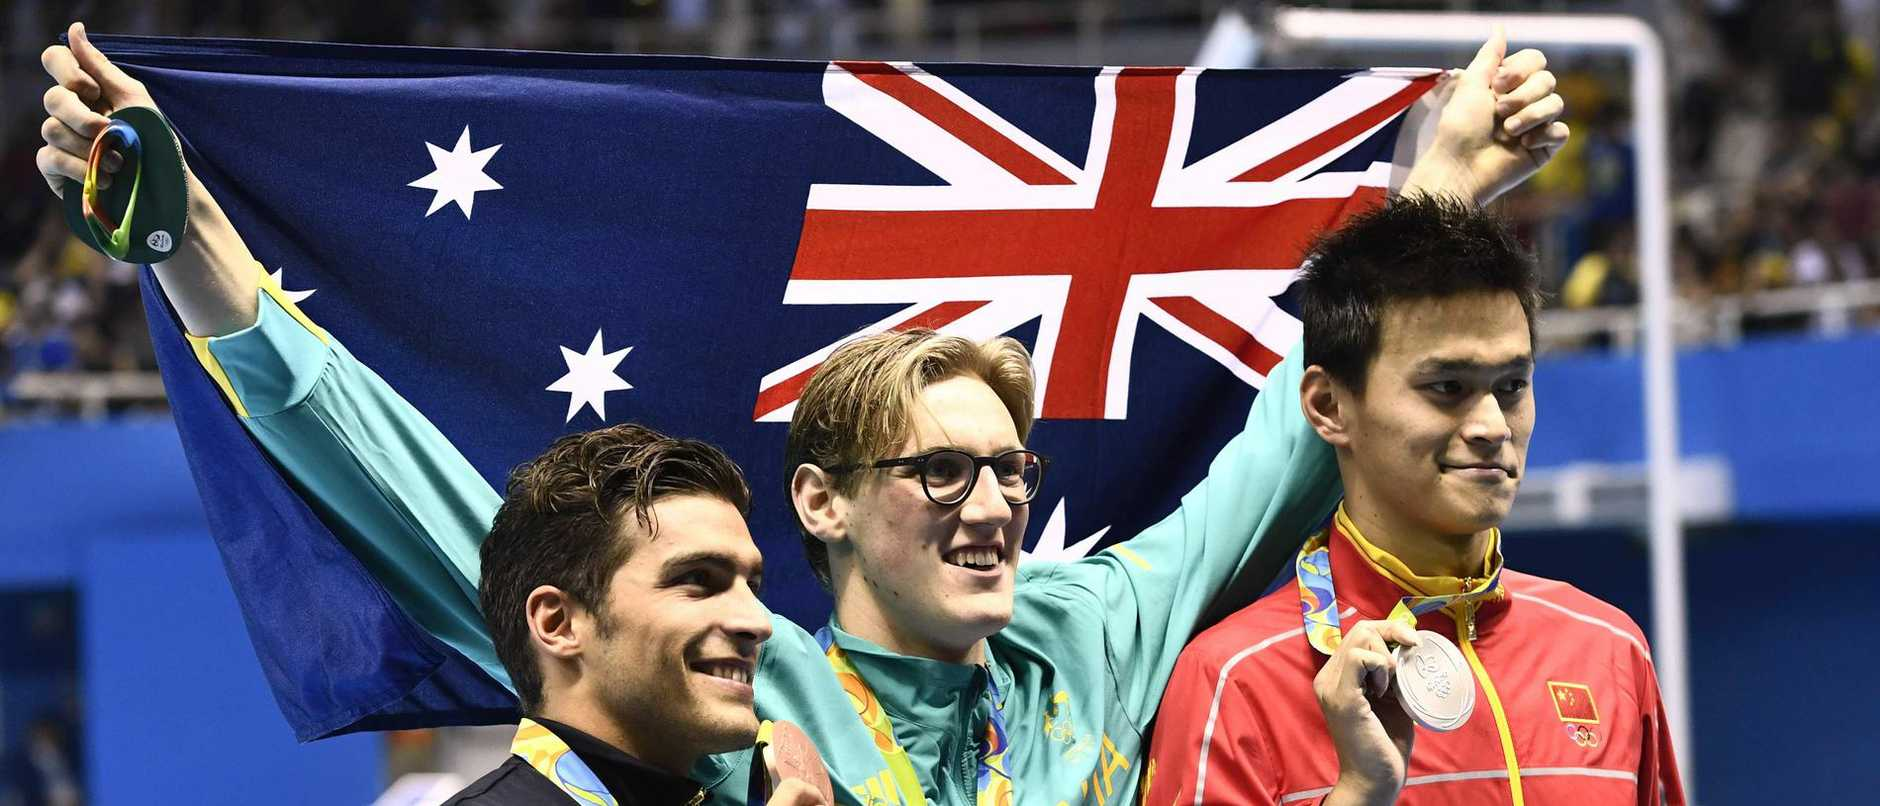 As Sun Yang declares he will fight his eight-year doping ban, the rest of the world has its say on the groundbreaking verdict.